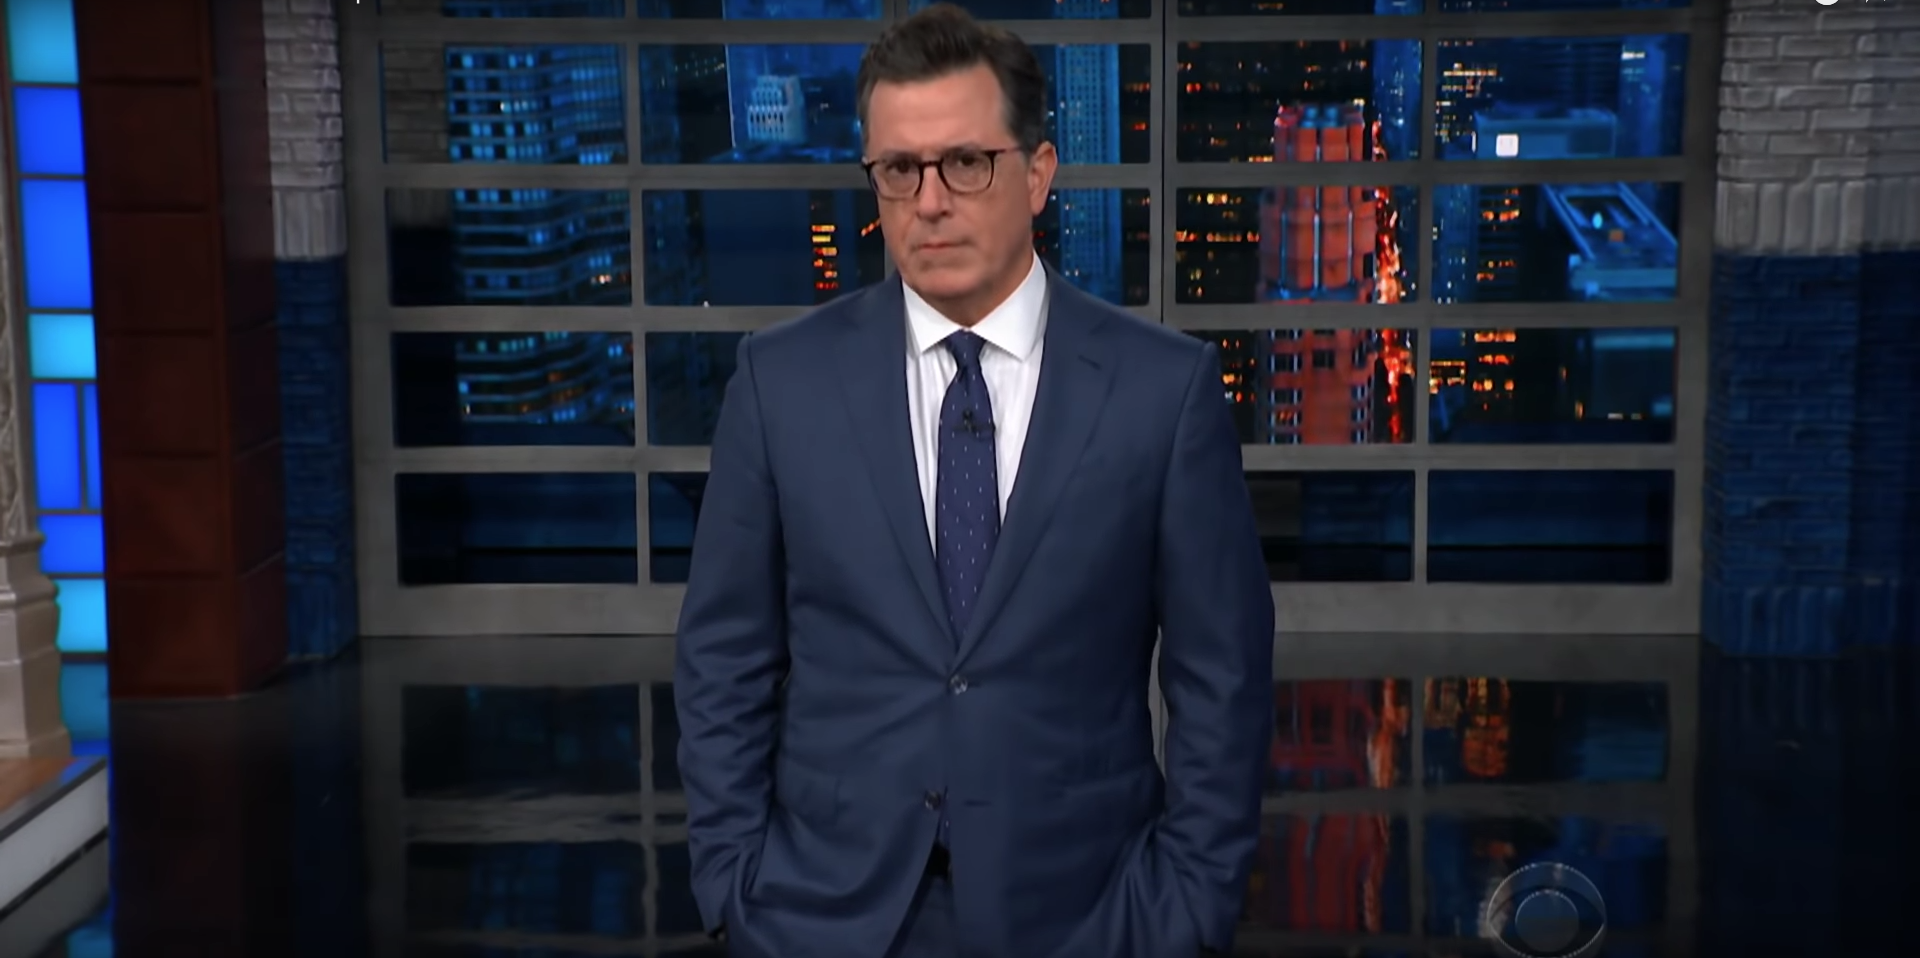 Late-Night TV Hosts Mock Trump Administration Over 'Stupid' Space Force